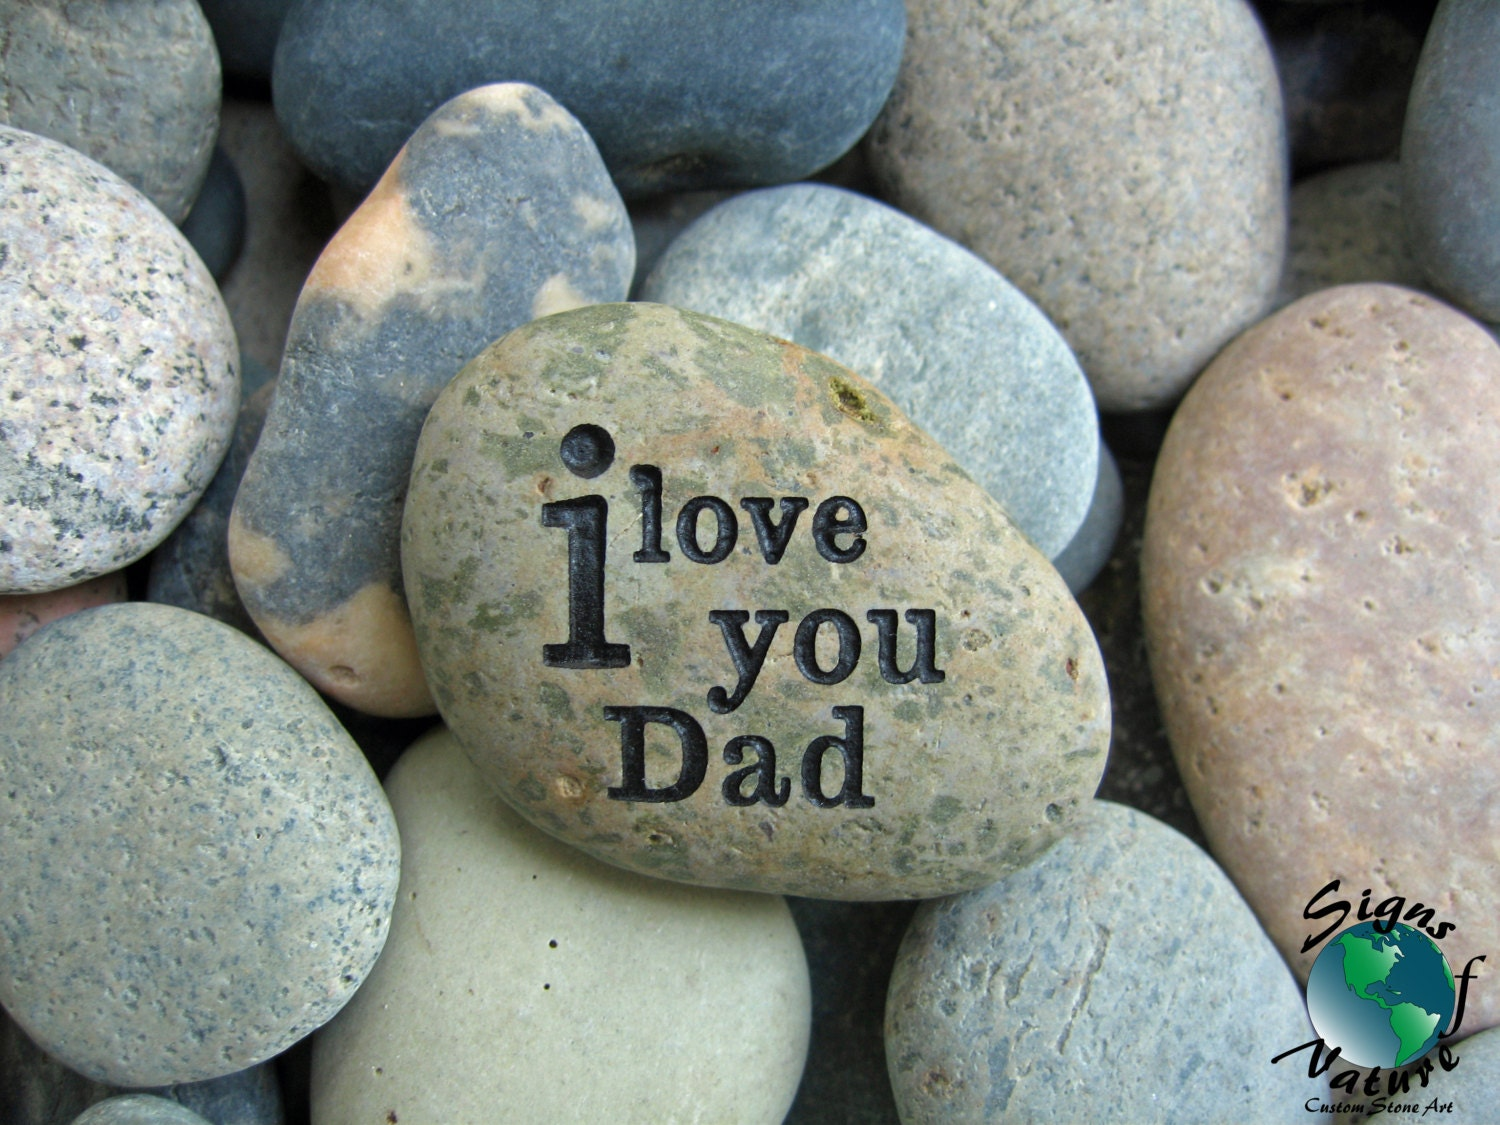 i love you dad keepsake stone 2in 3in custom hand engraved. Black Bedroom Furniture Sets. Home Design Ideas